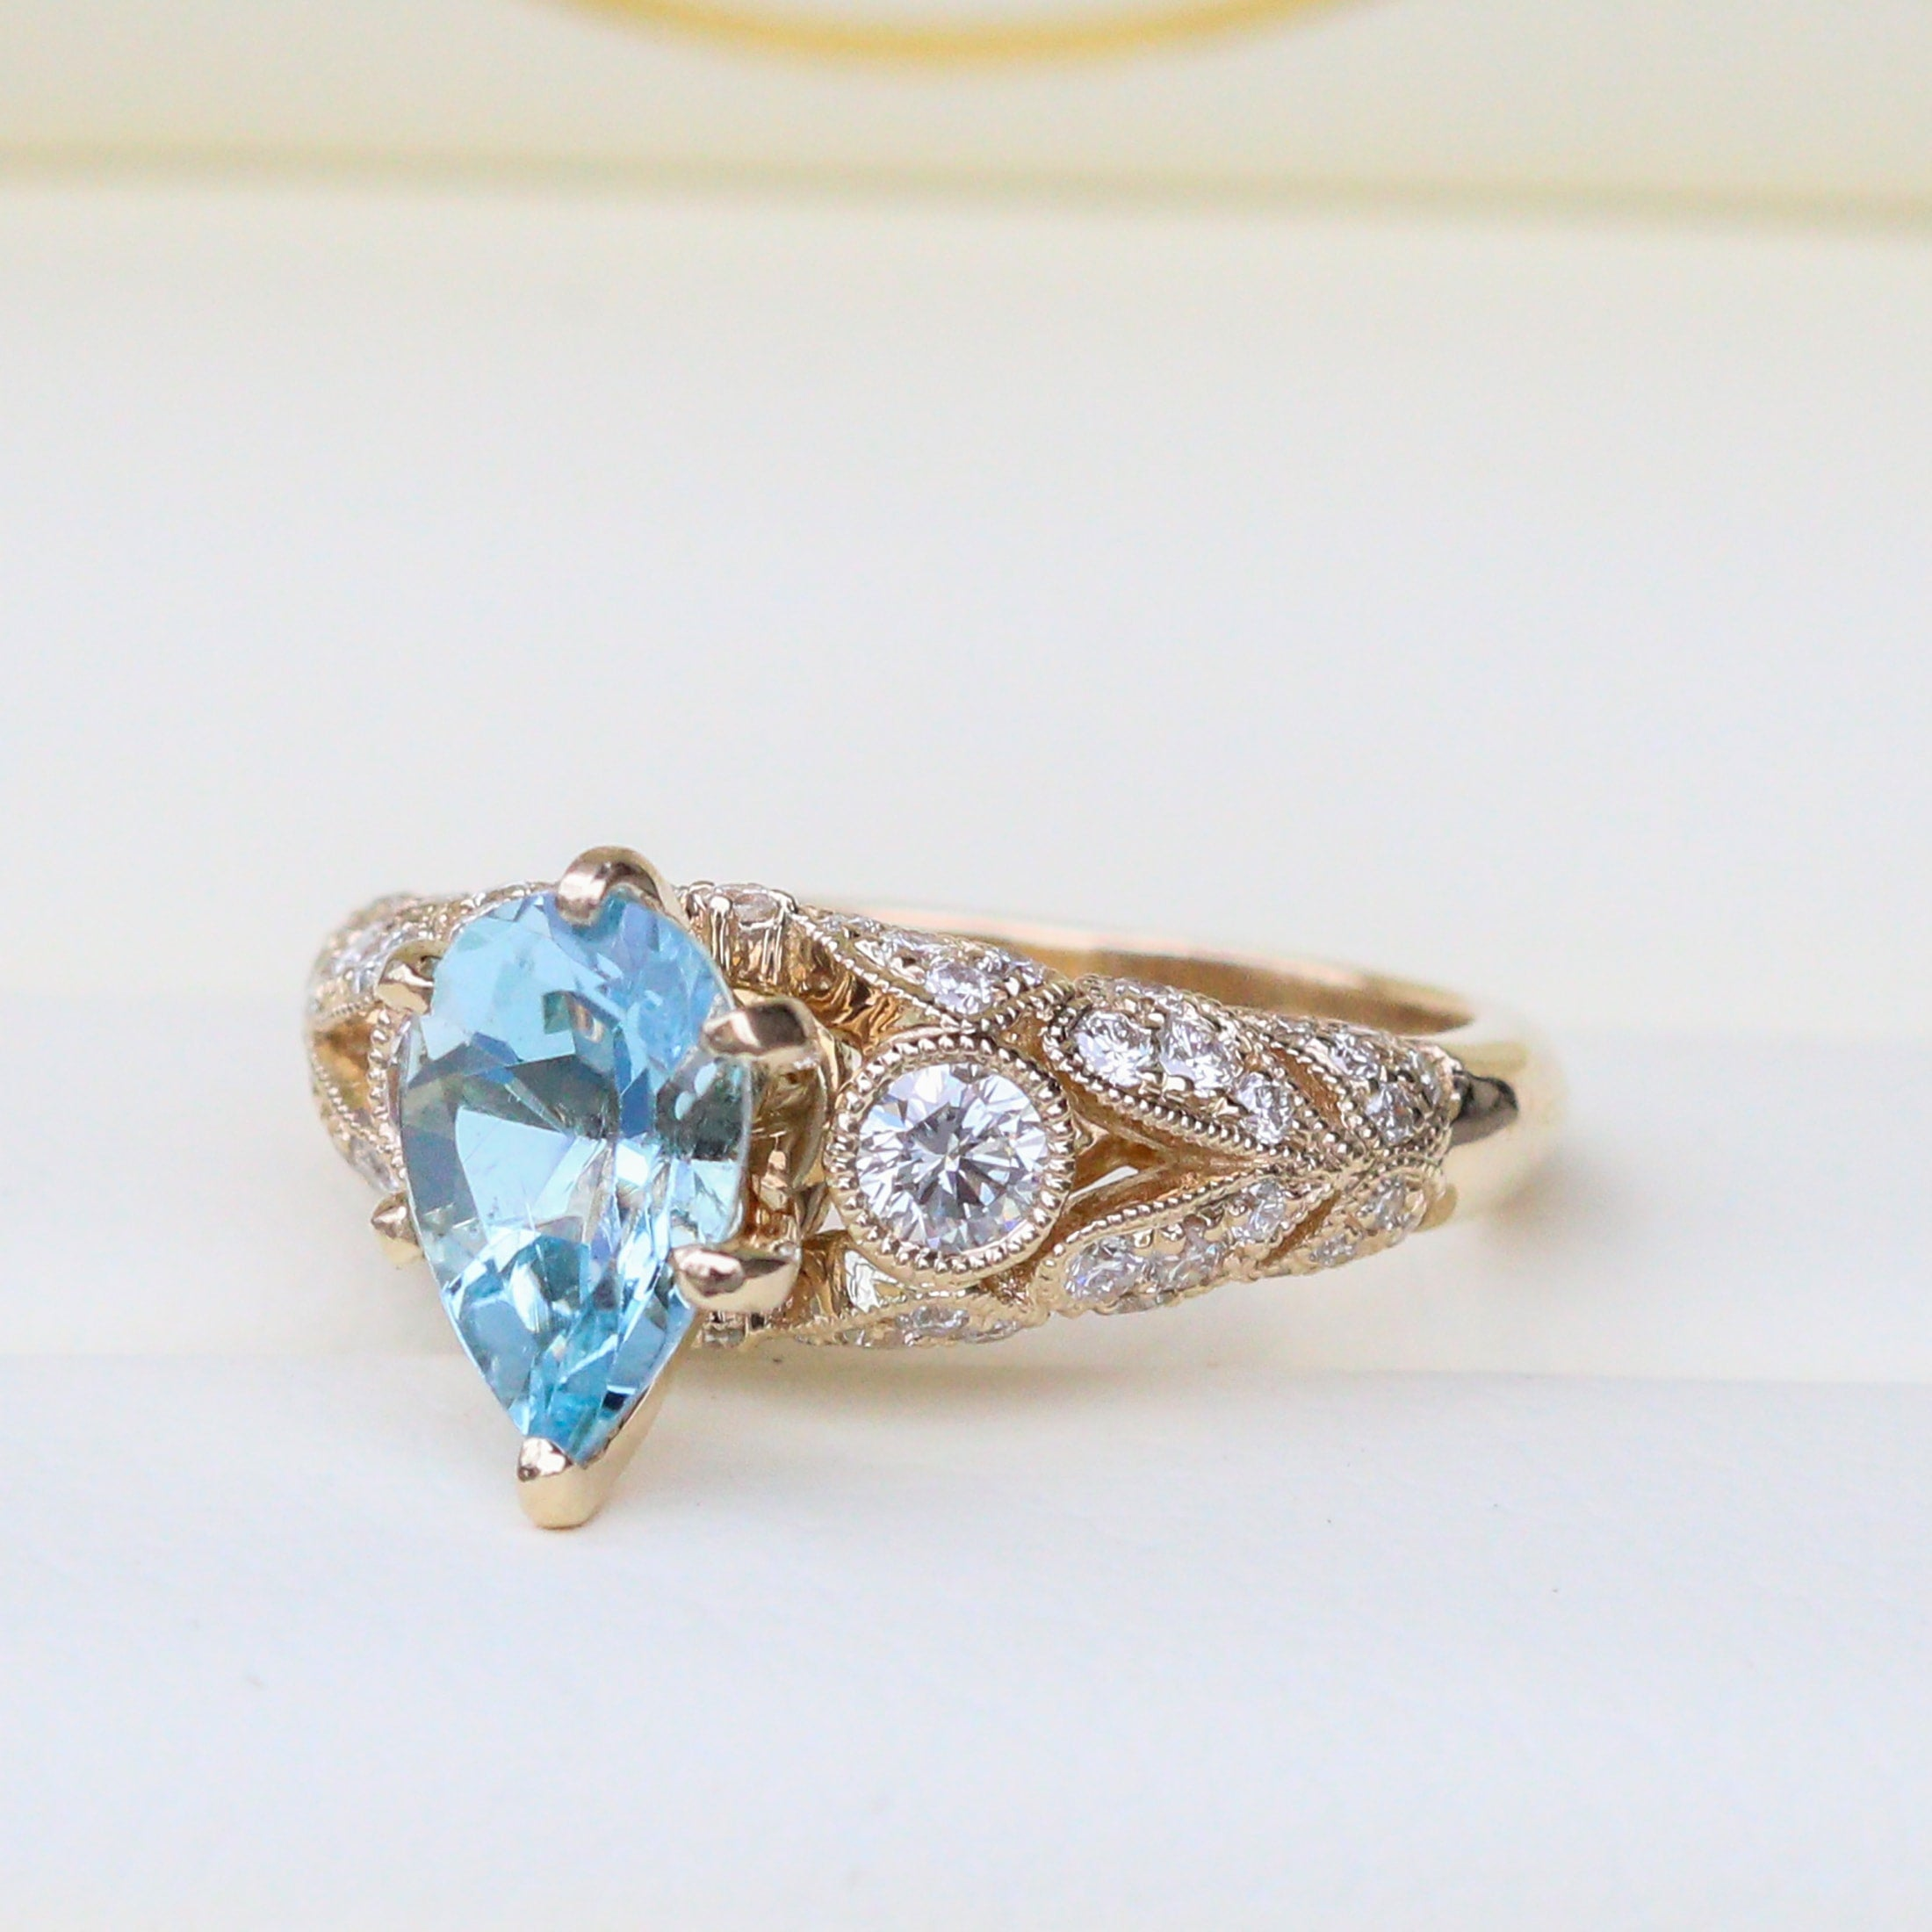 Custom engagement ring with aquamarine center